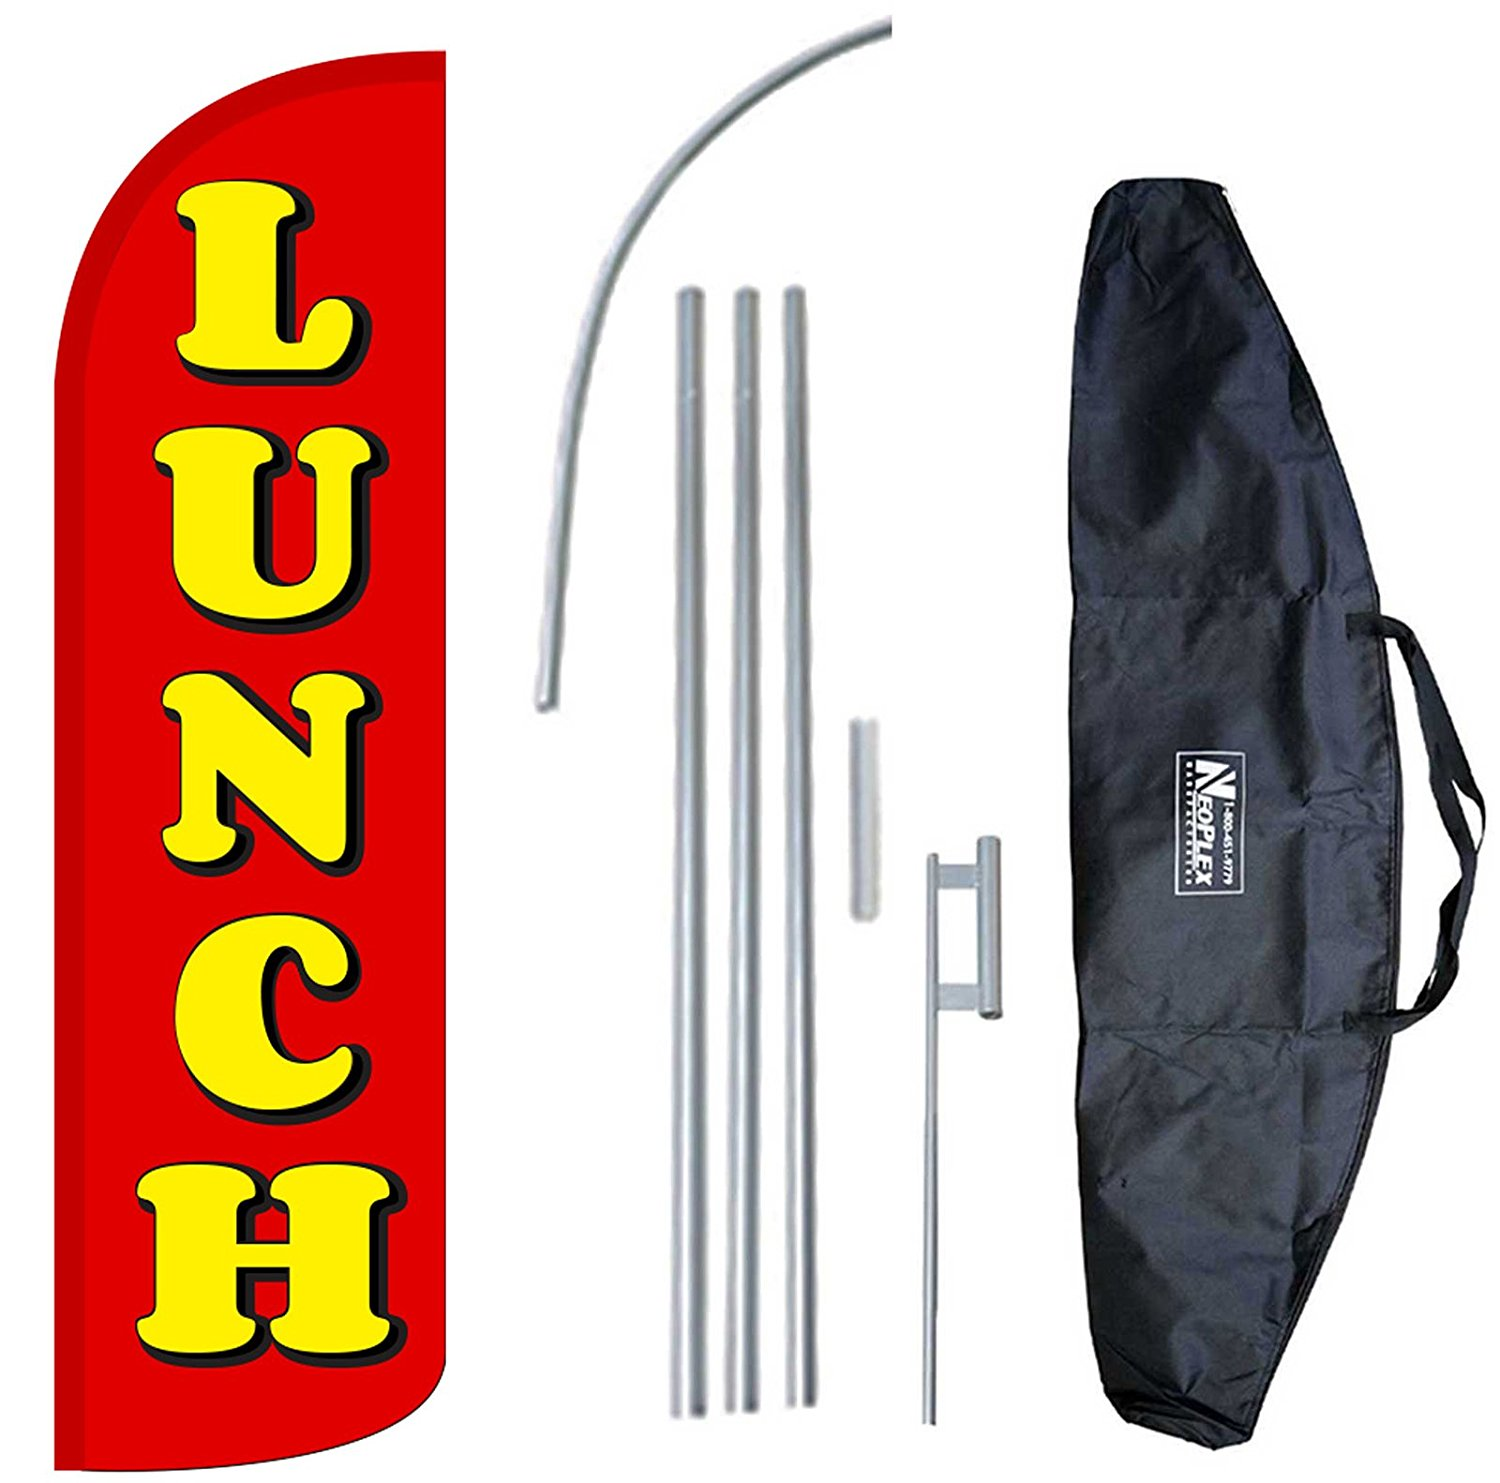 """LUNCH"" 12-foot KING SIZE Complete Swooper Feather Flag and Case Set...includes 12-foot Flag, 15-foot Pole, Ground Spike, and Carrying/Storage Case"